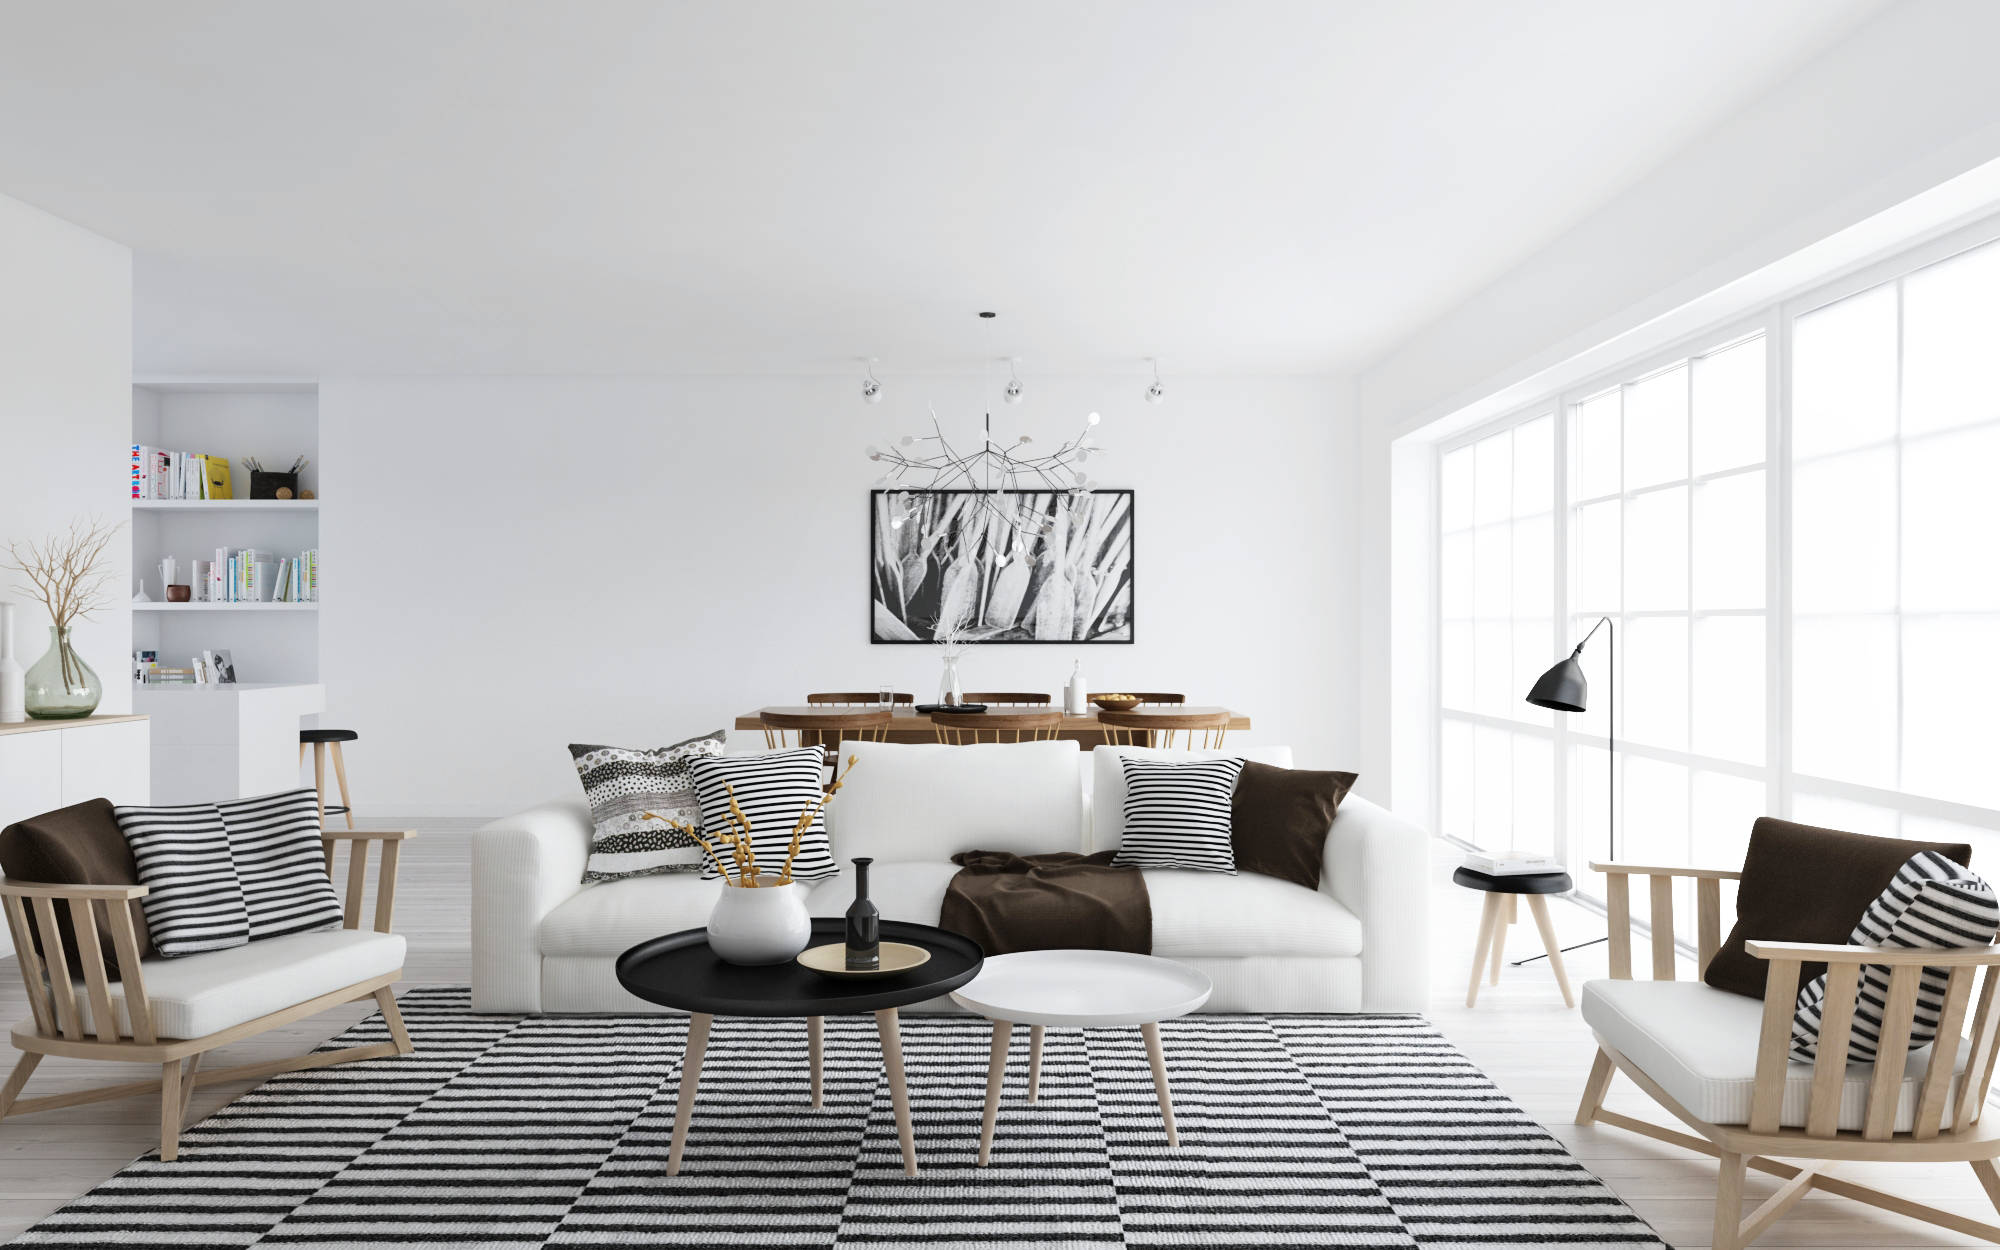 ATDesign-nordic-style-living-in-monochrome.jpg